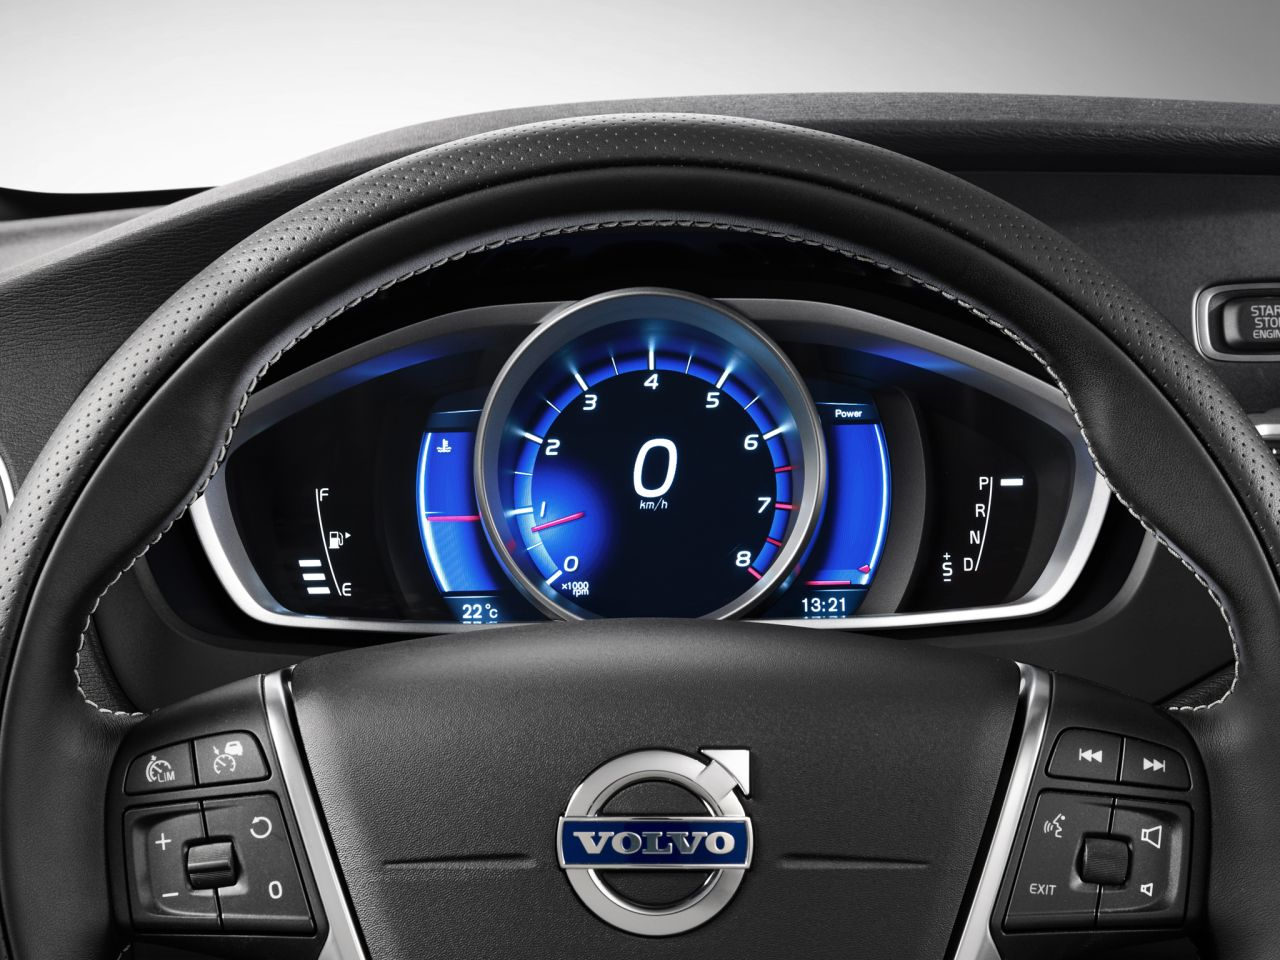 Volvo Verlichting Top 3 Dashboards Volvo V40 Renault Twizy En Vw Beetle